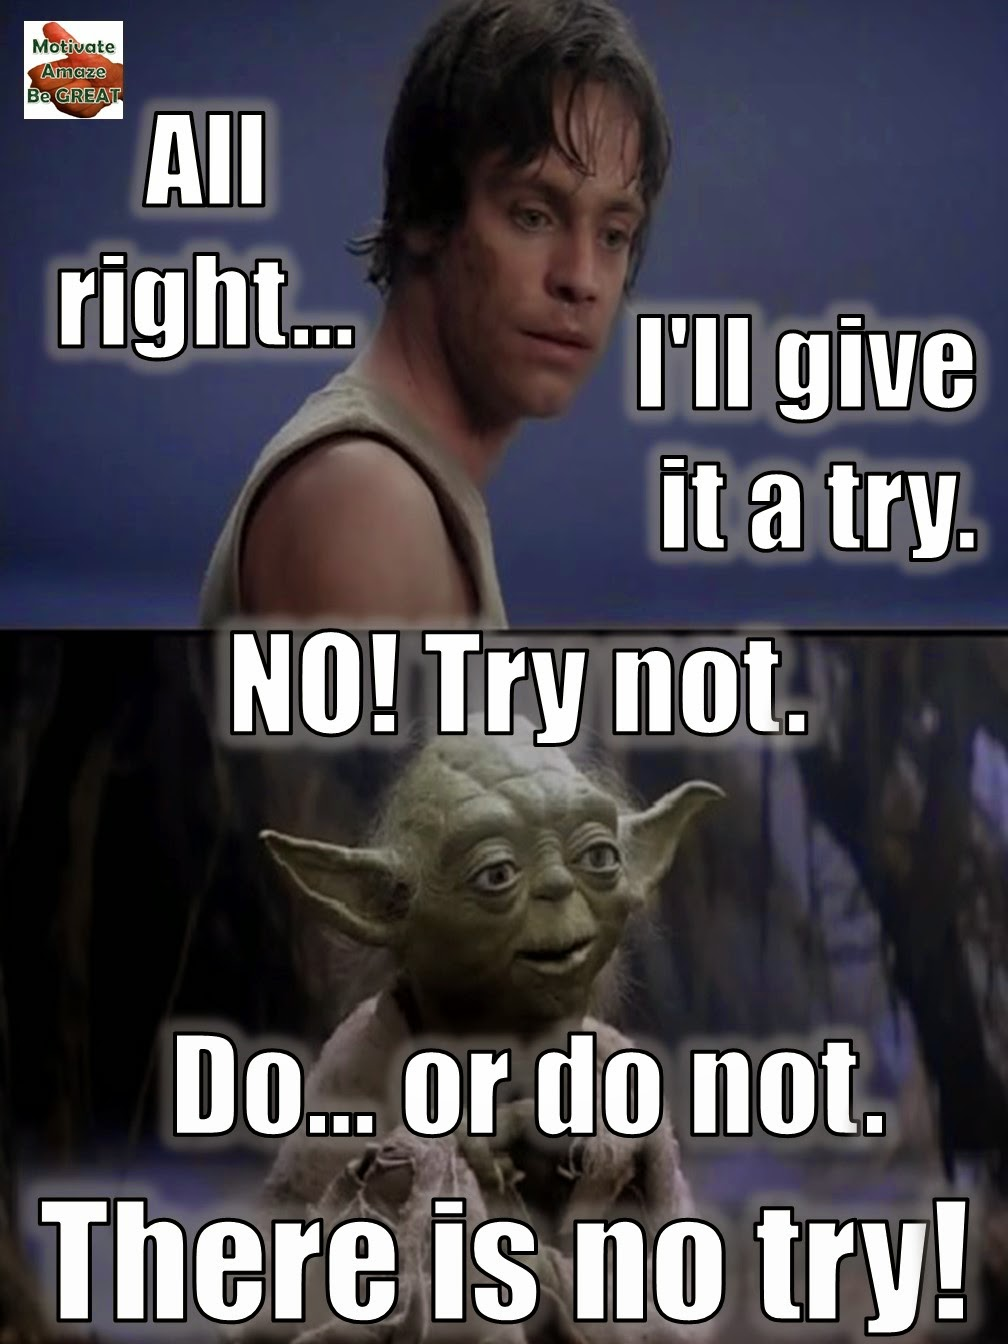 Star Wars, Inspirational Lesson, Inspirational Quotes, Luke Skywalker, Yoda, Motivation, Success, Achieve